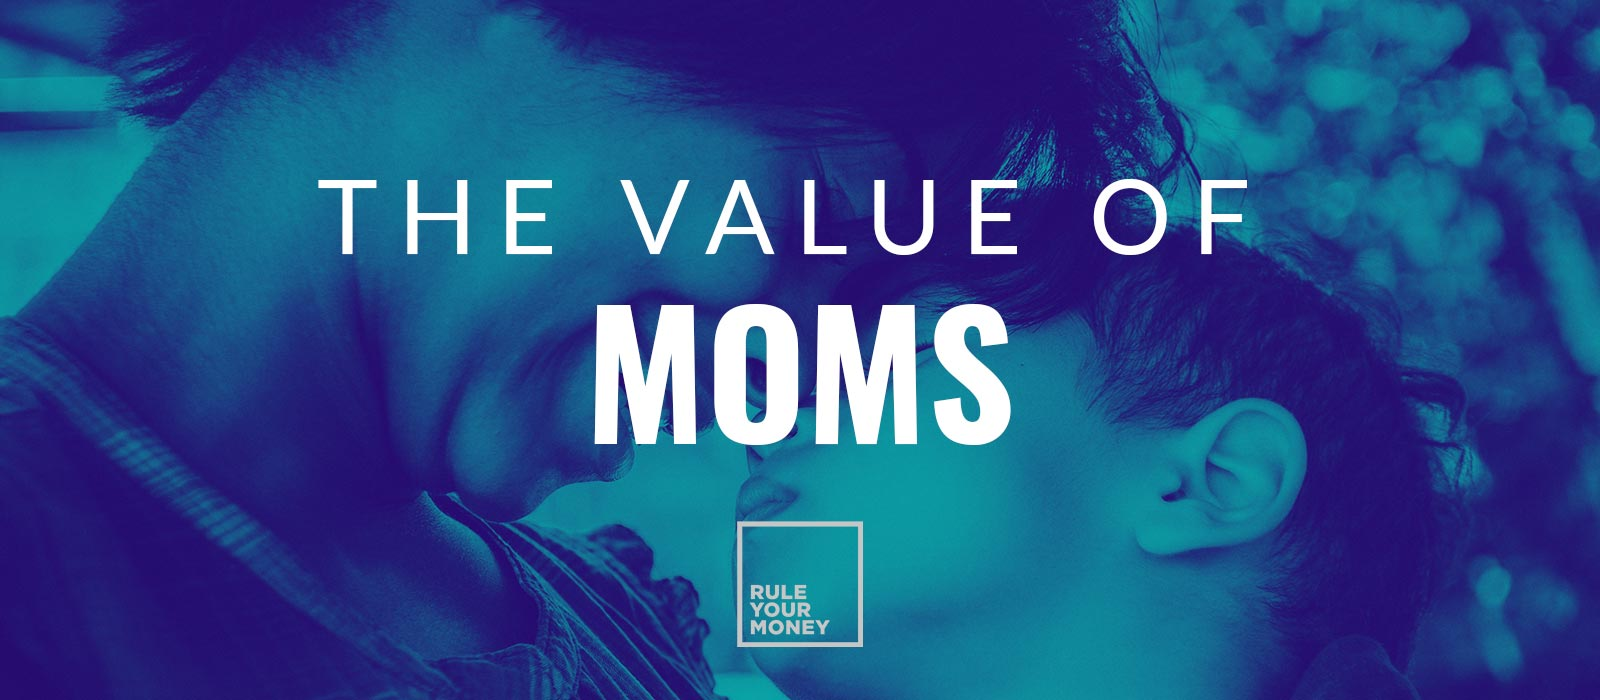 The Value of Mom: A Mother's Day Tribute to my Wife